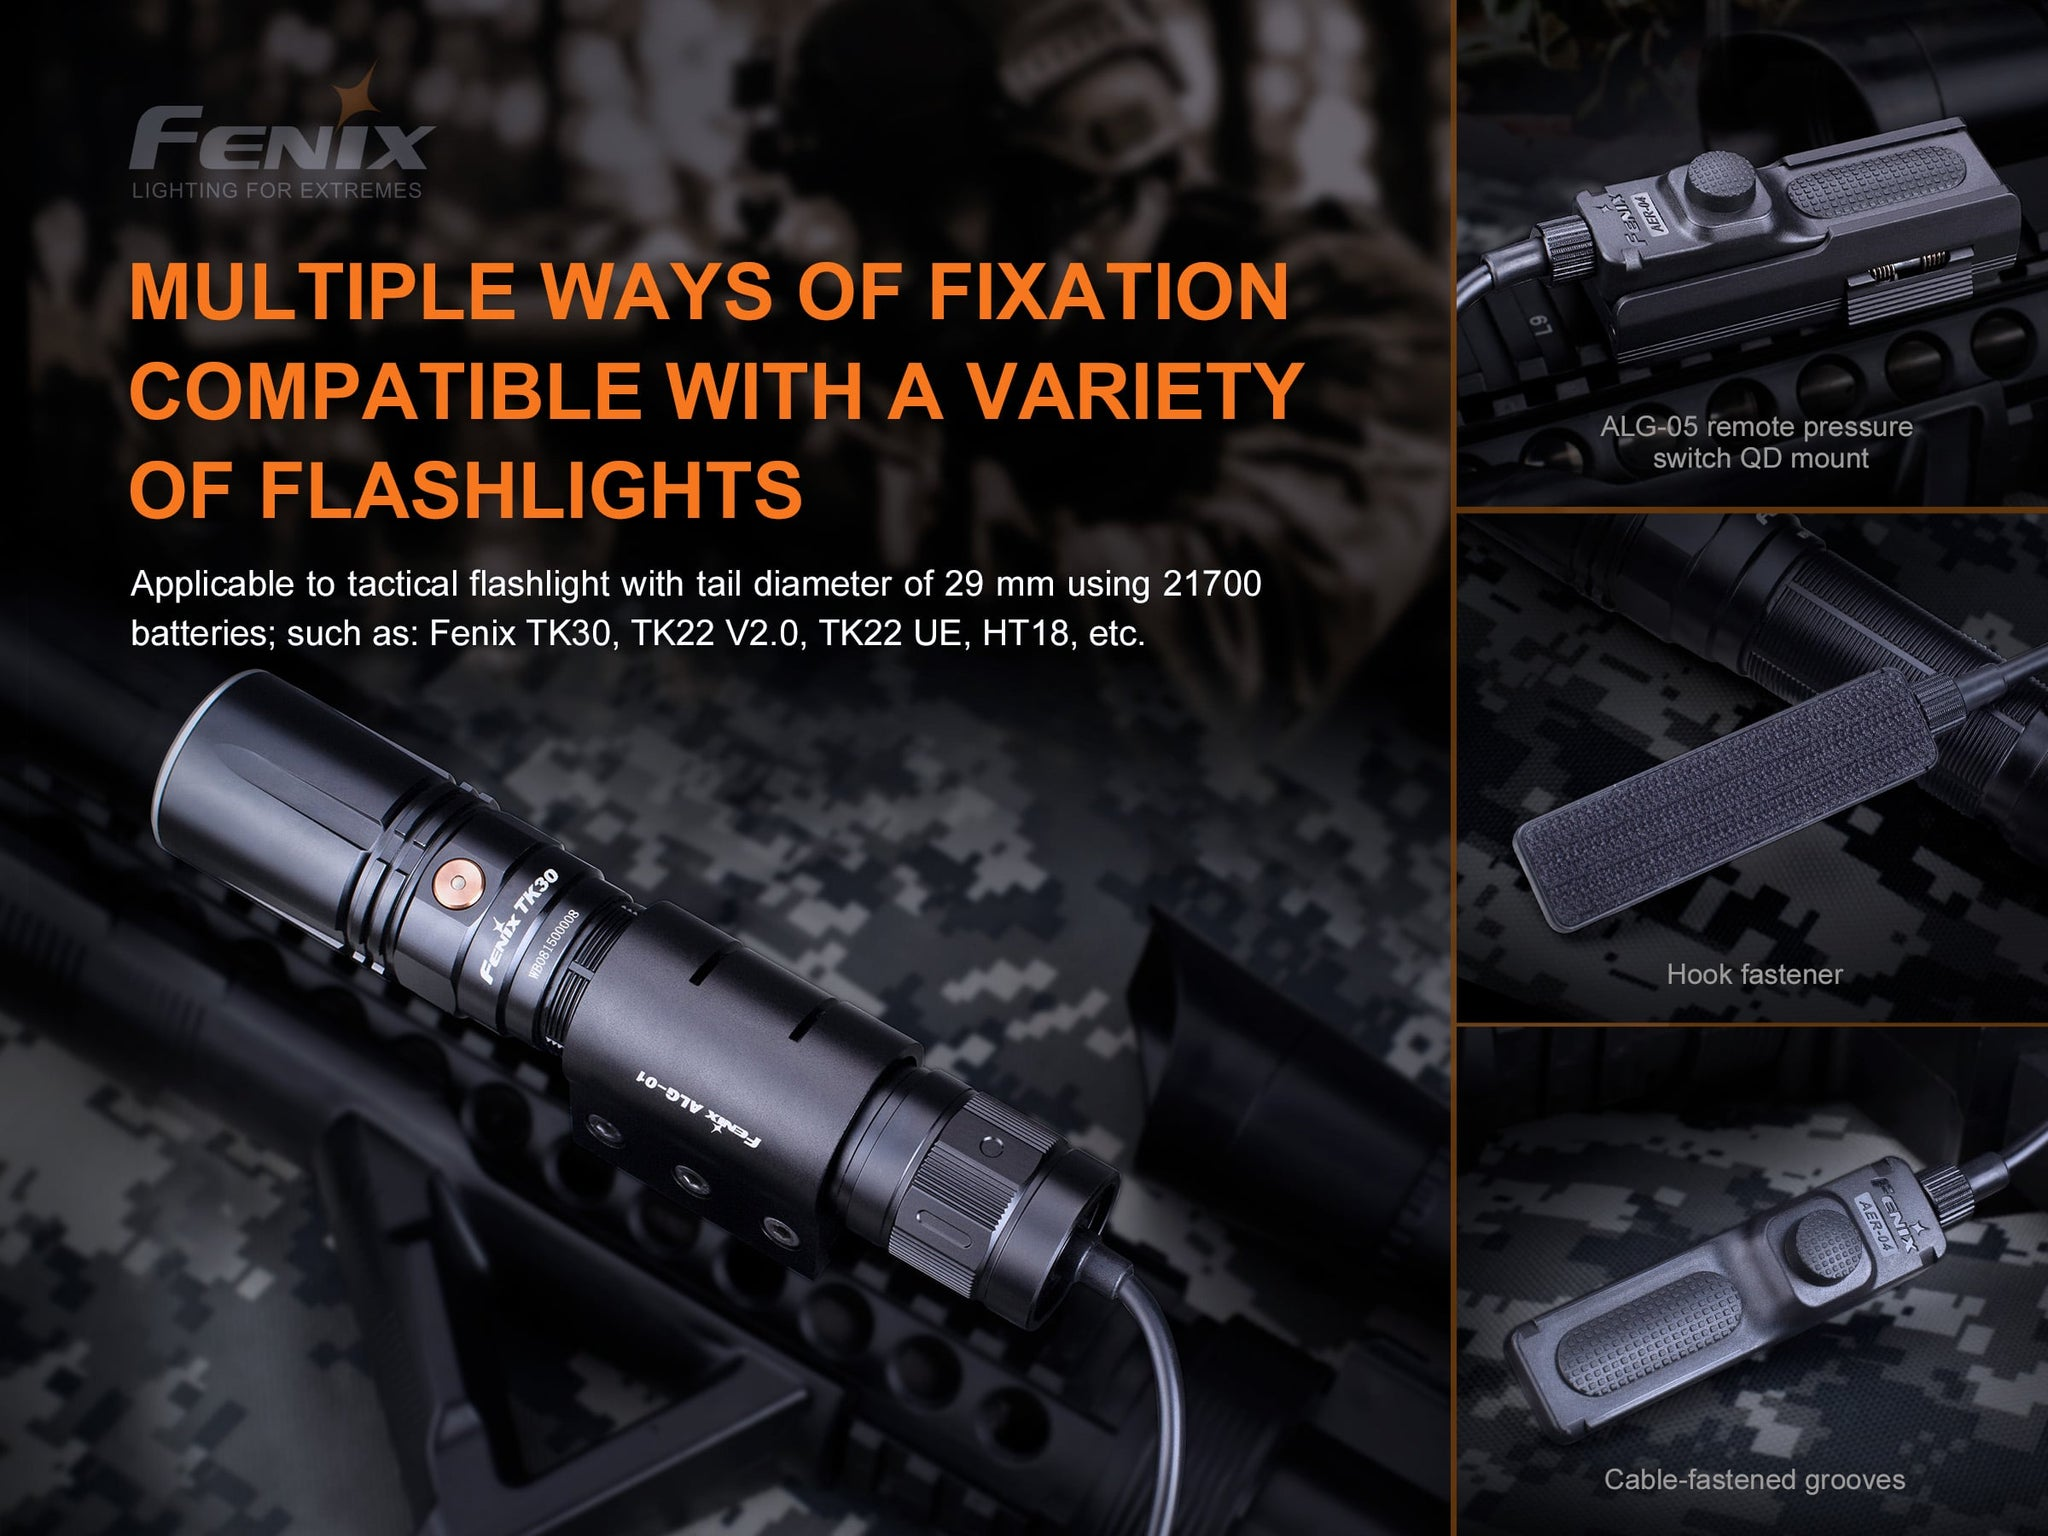 Fenix AER 04 Tactical Remote Pressure Switch in India Accessory For Rail Mounted Flashlight